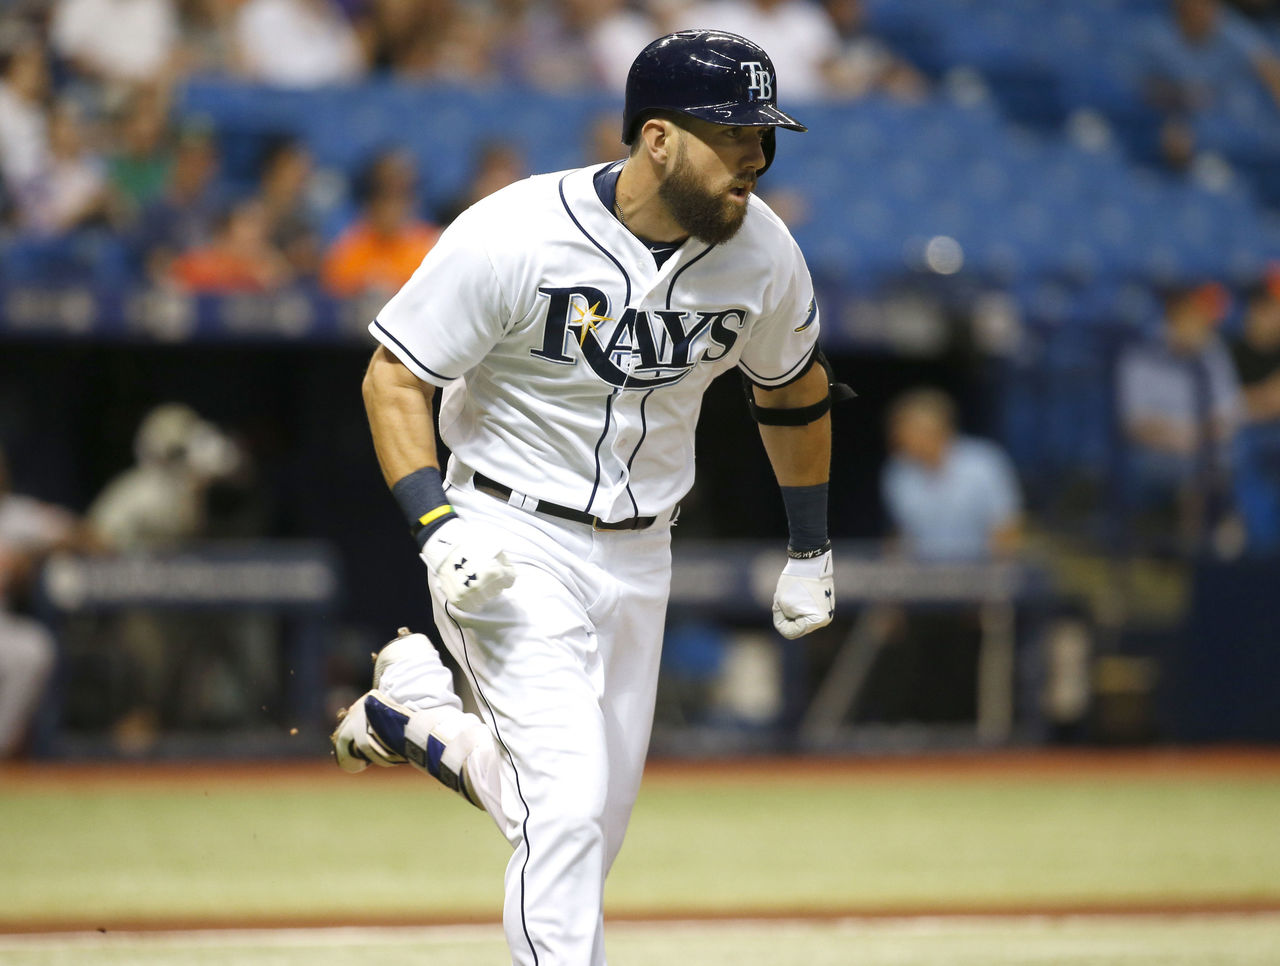 Cropped 2017 07 26t003952z 1846278280 nocid rtrmadp 3 mlb baltimore orioles at tampa bay rays